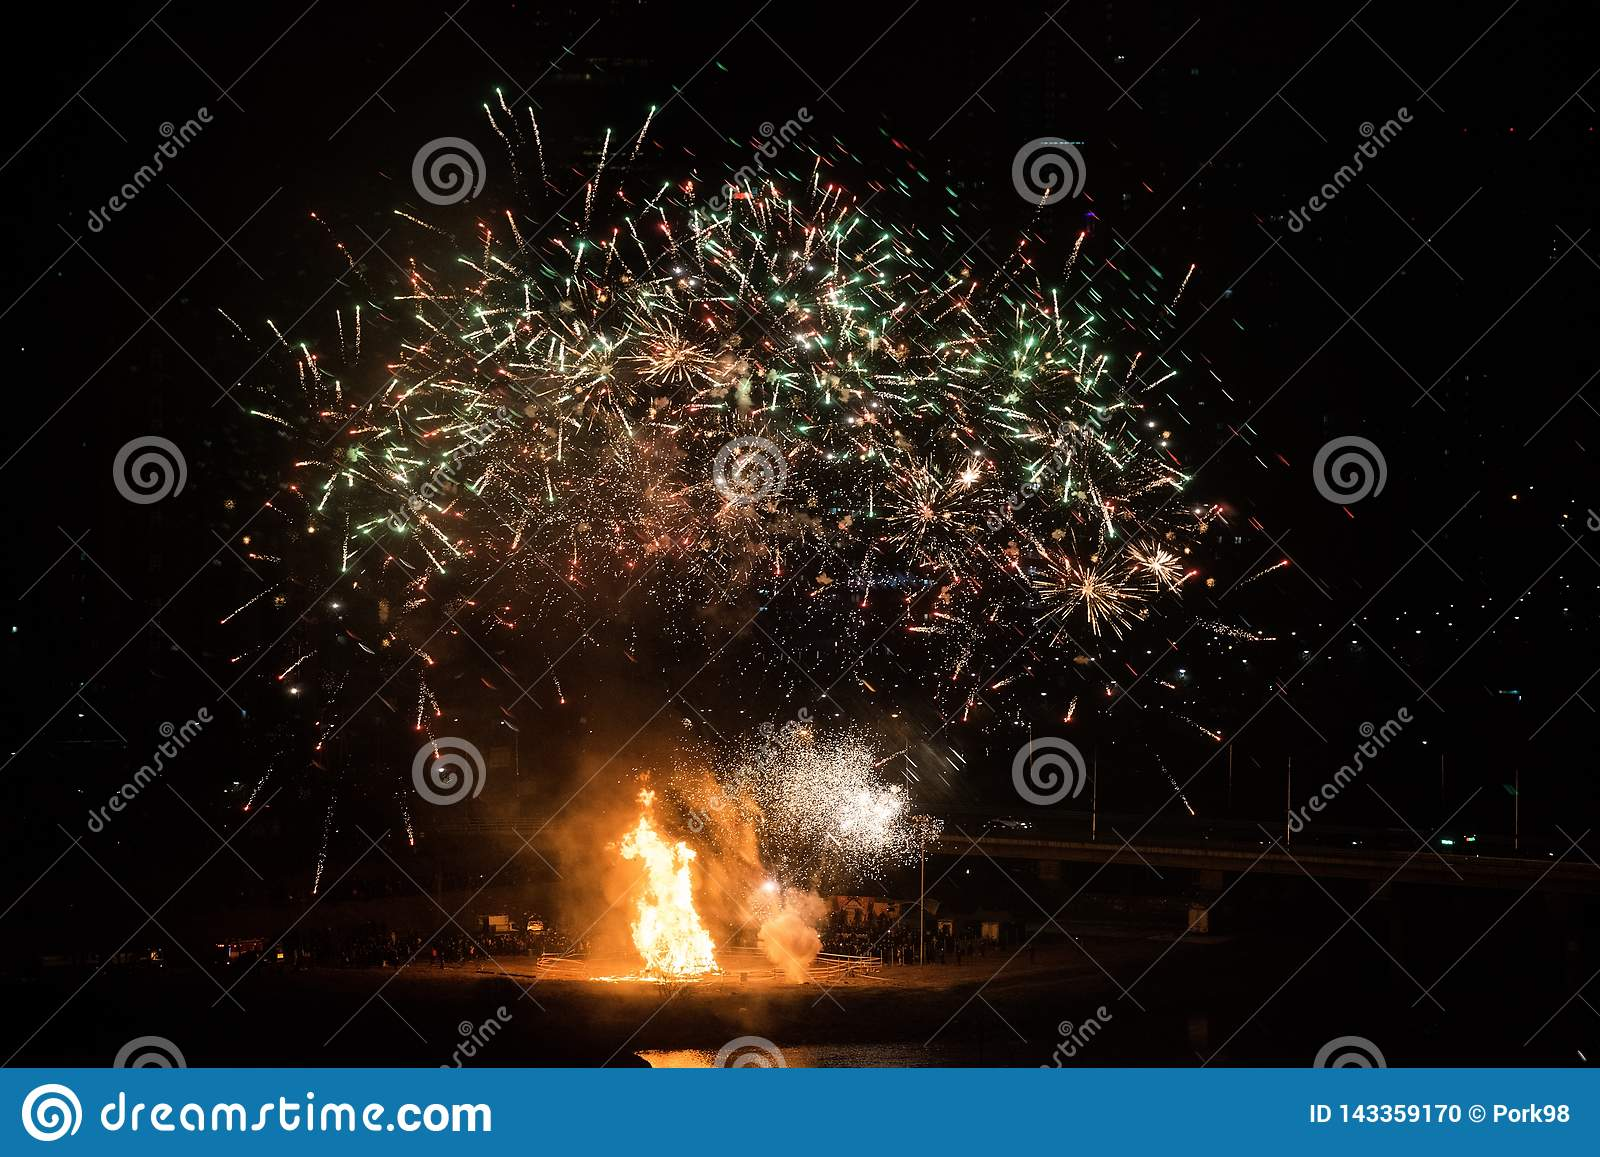 Bonfire And Fireworks For The Celebration Of The First Full Moon Of